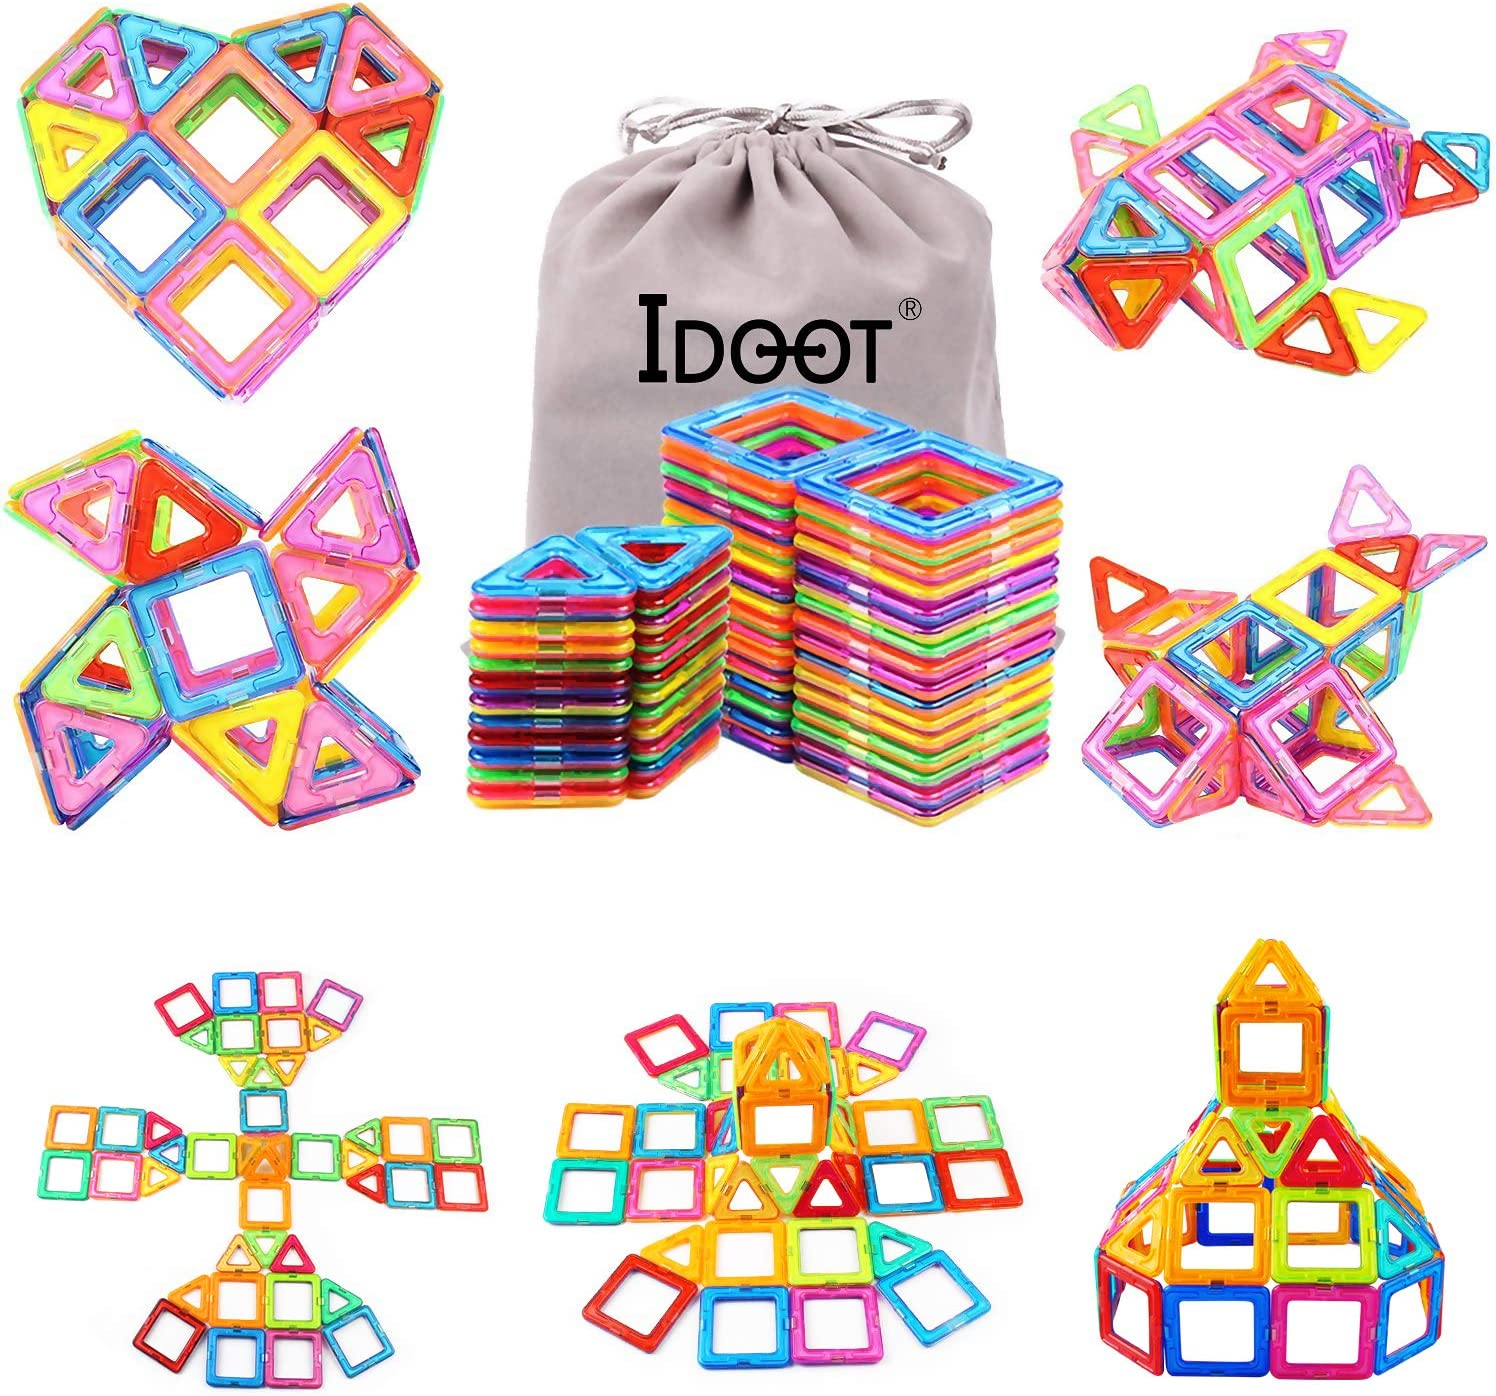 idoot Magnetic Blocks Building Set for Kids  Magnetic Tiles Educational Building Construction Toys for Boys   Girls with Storage Bag - 56Pcs